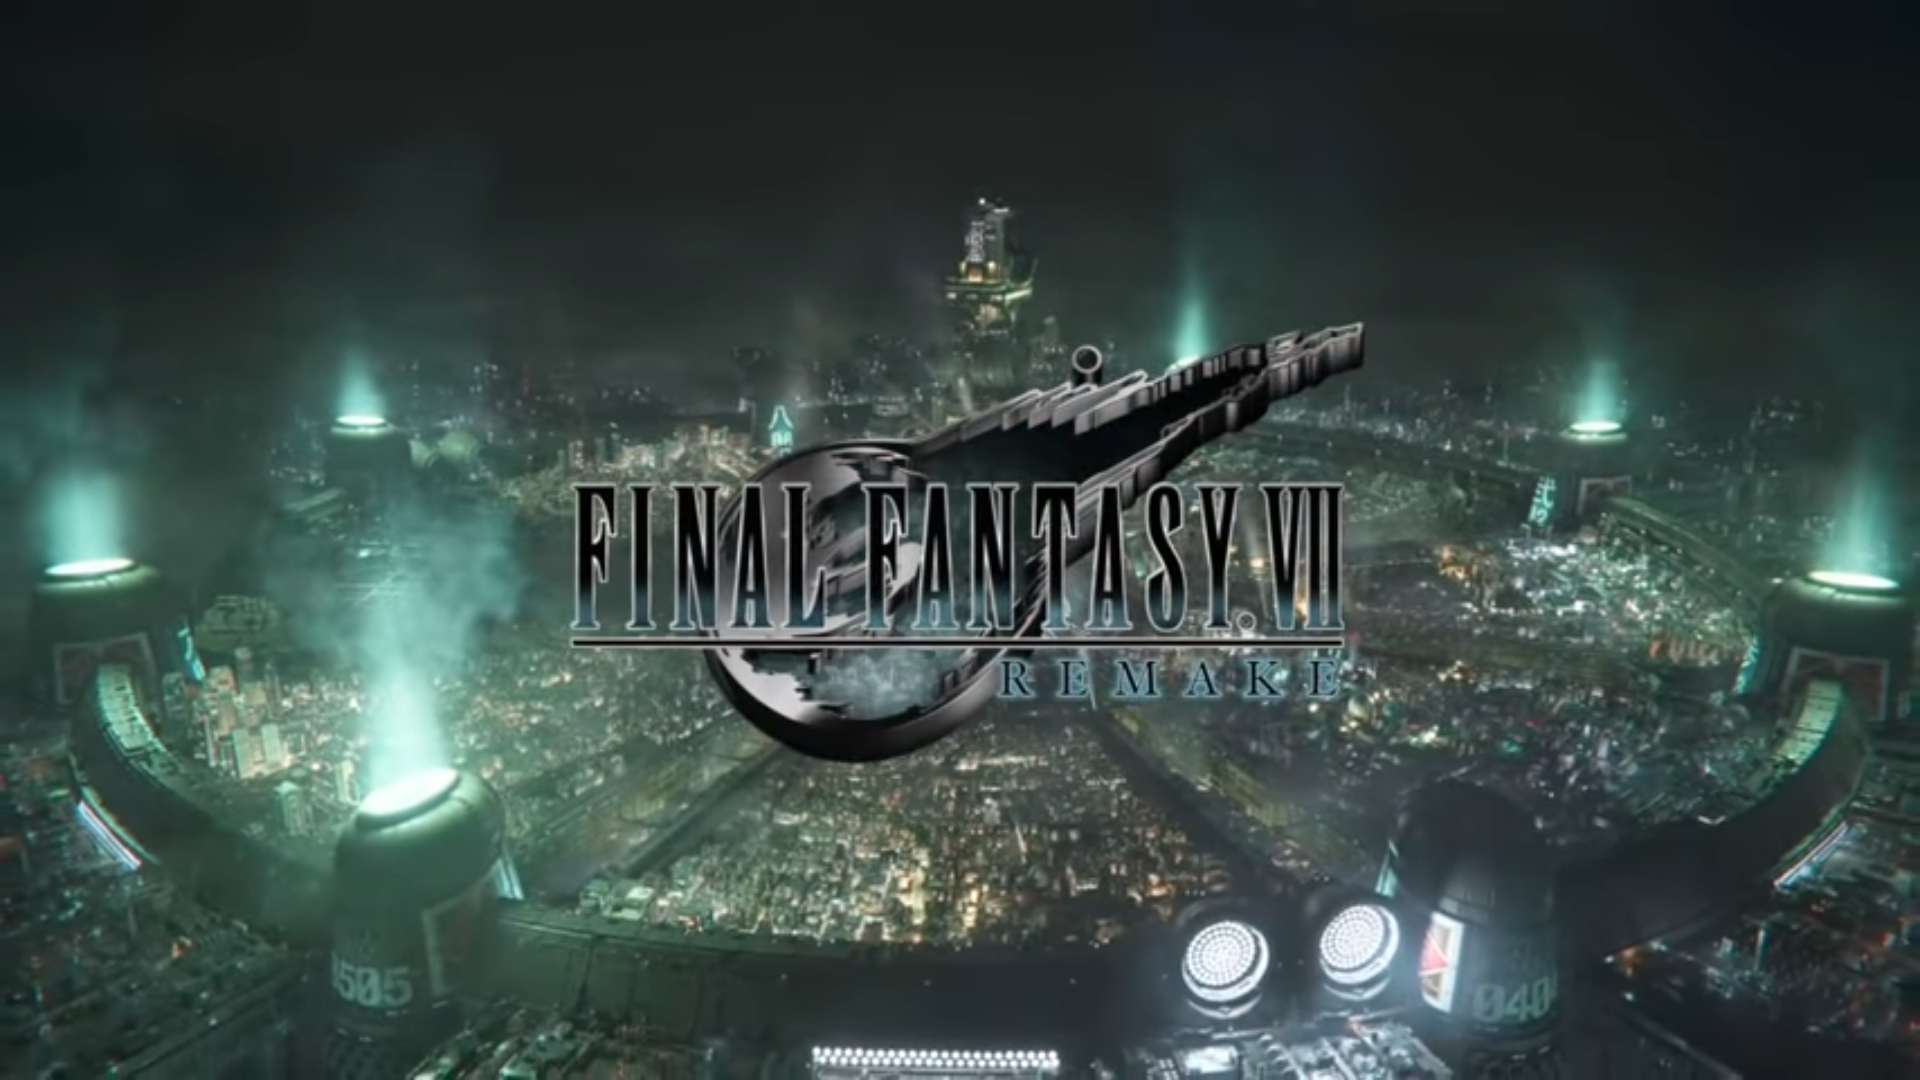 Final Fantasy Vii Remake Hd Wallpapers Wallpaper Cave